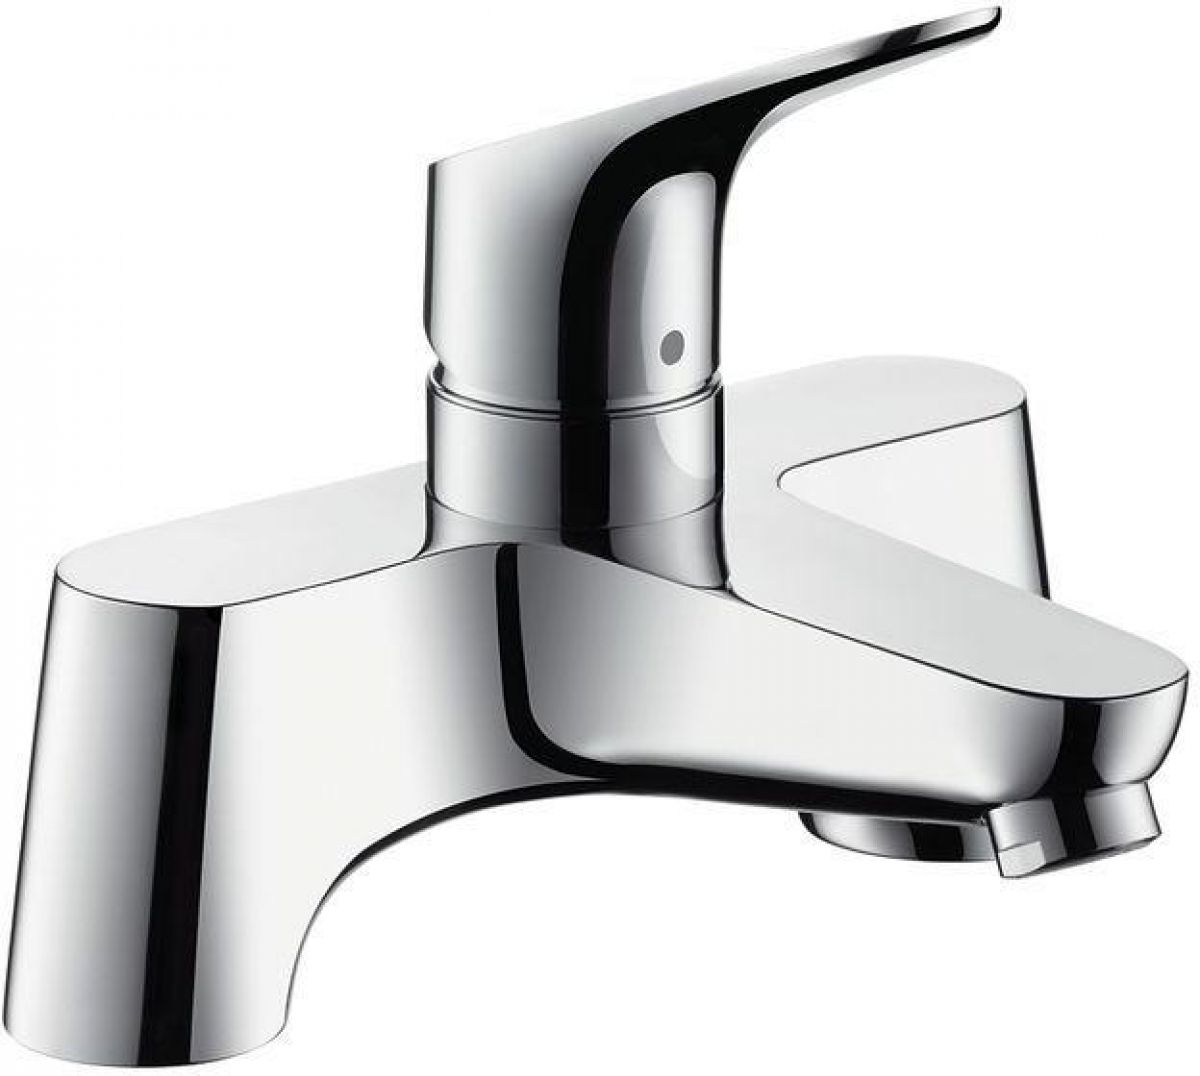 Rask hansgrohe Focus Bath Tap : UK Bathrooms UJ-98